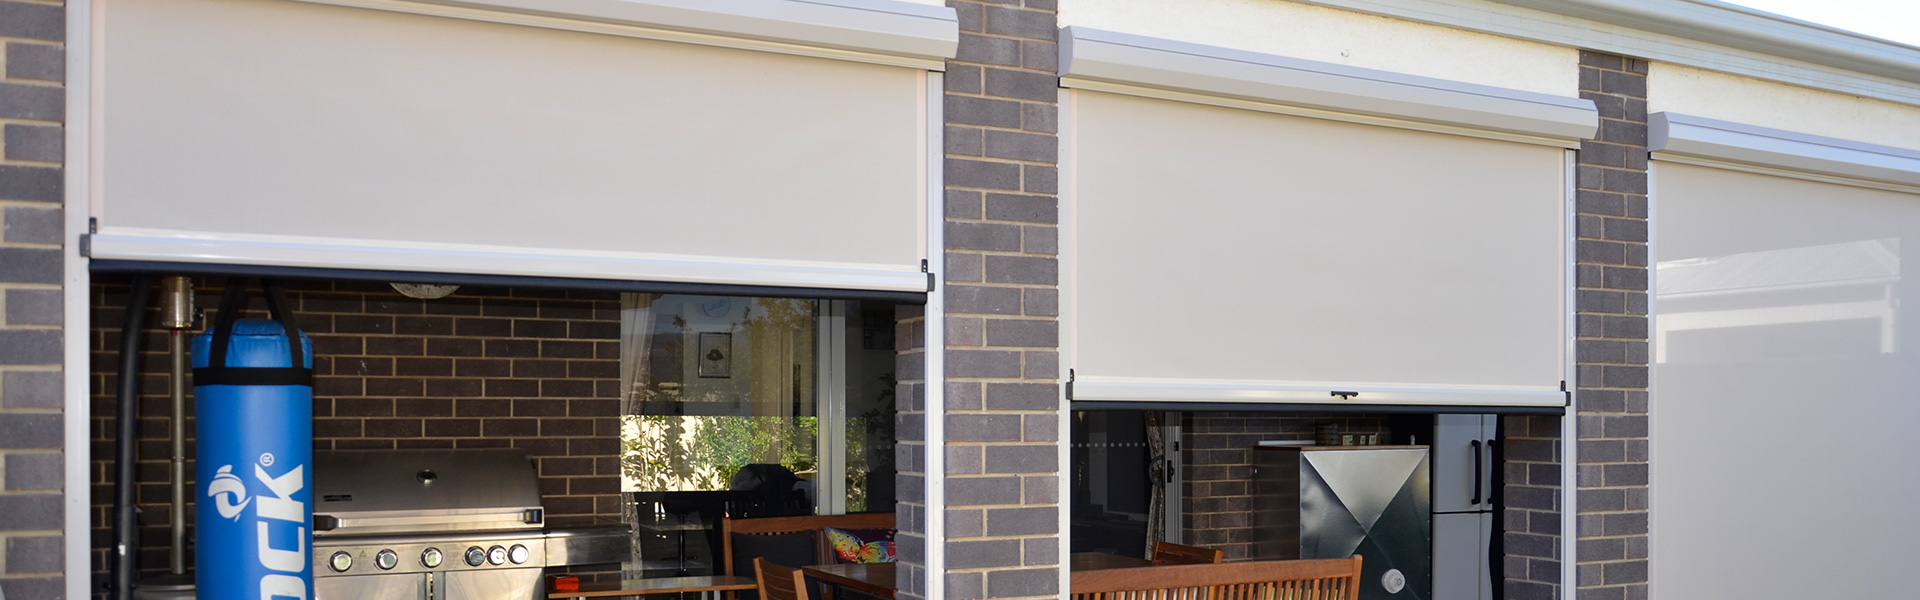 Environshade Blinds Adelaide | Outdoor Shade Blinds Adelaide